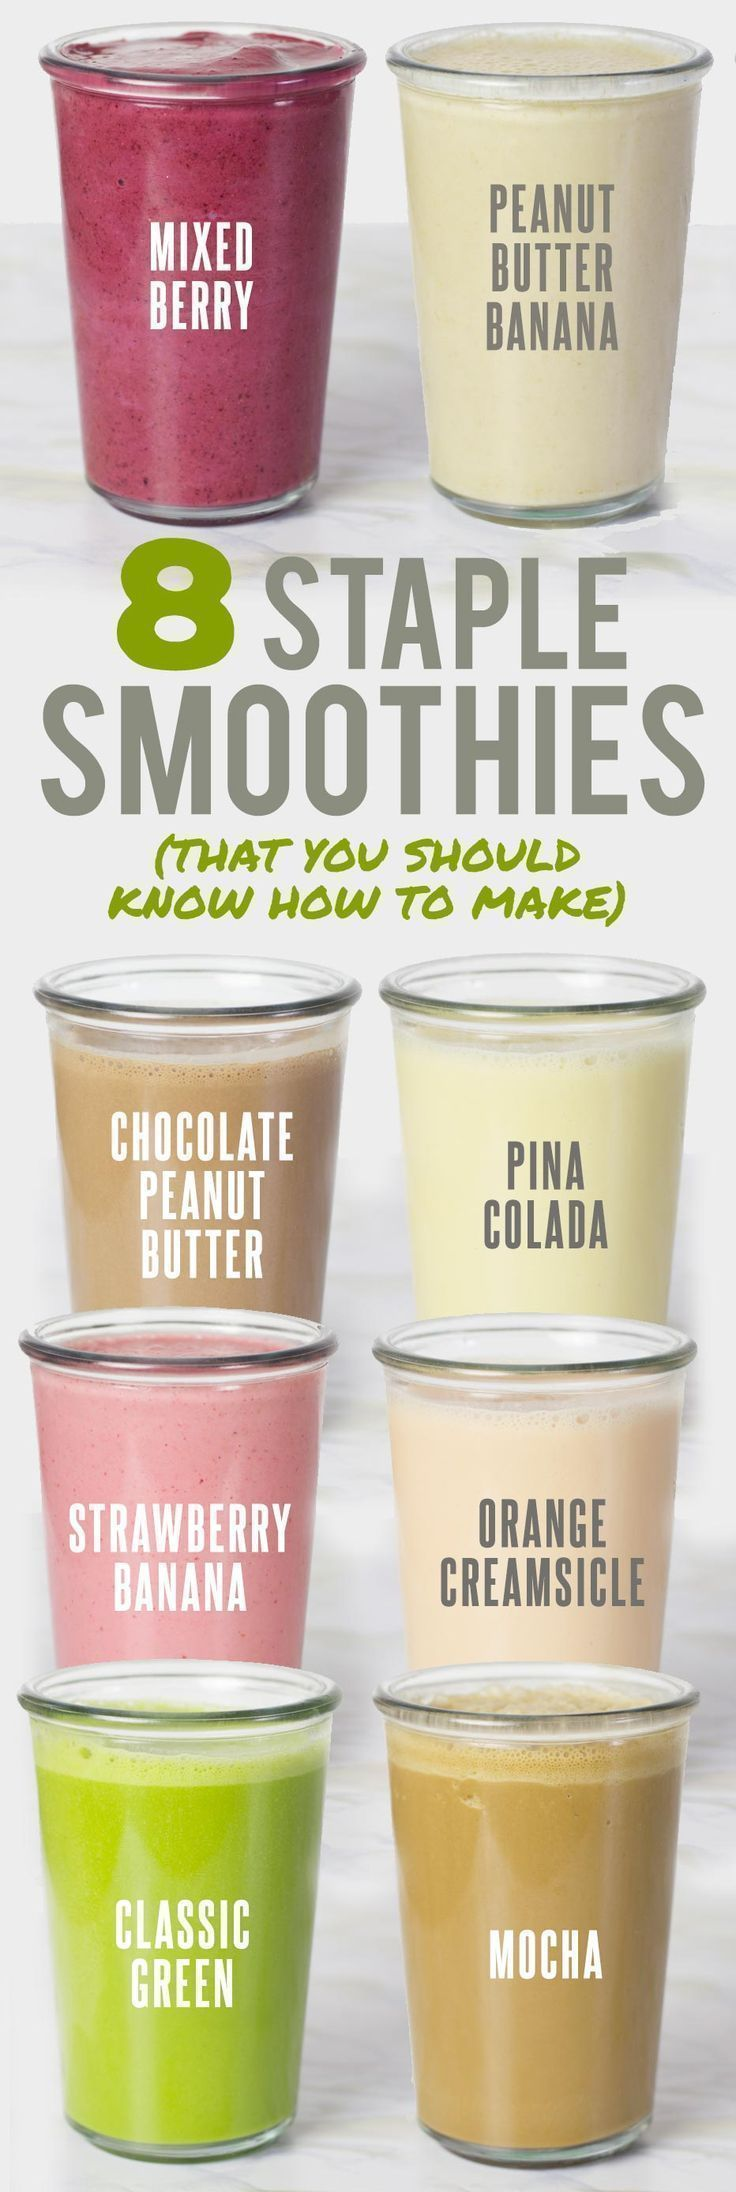 8 Staple Smoothies You Should Know How to Make